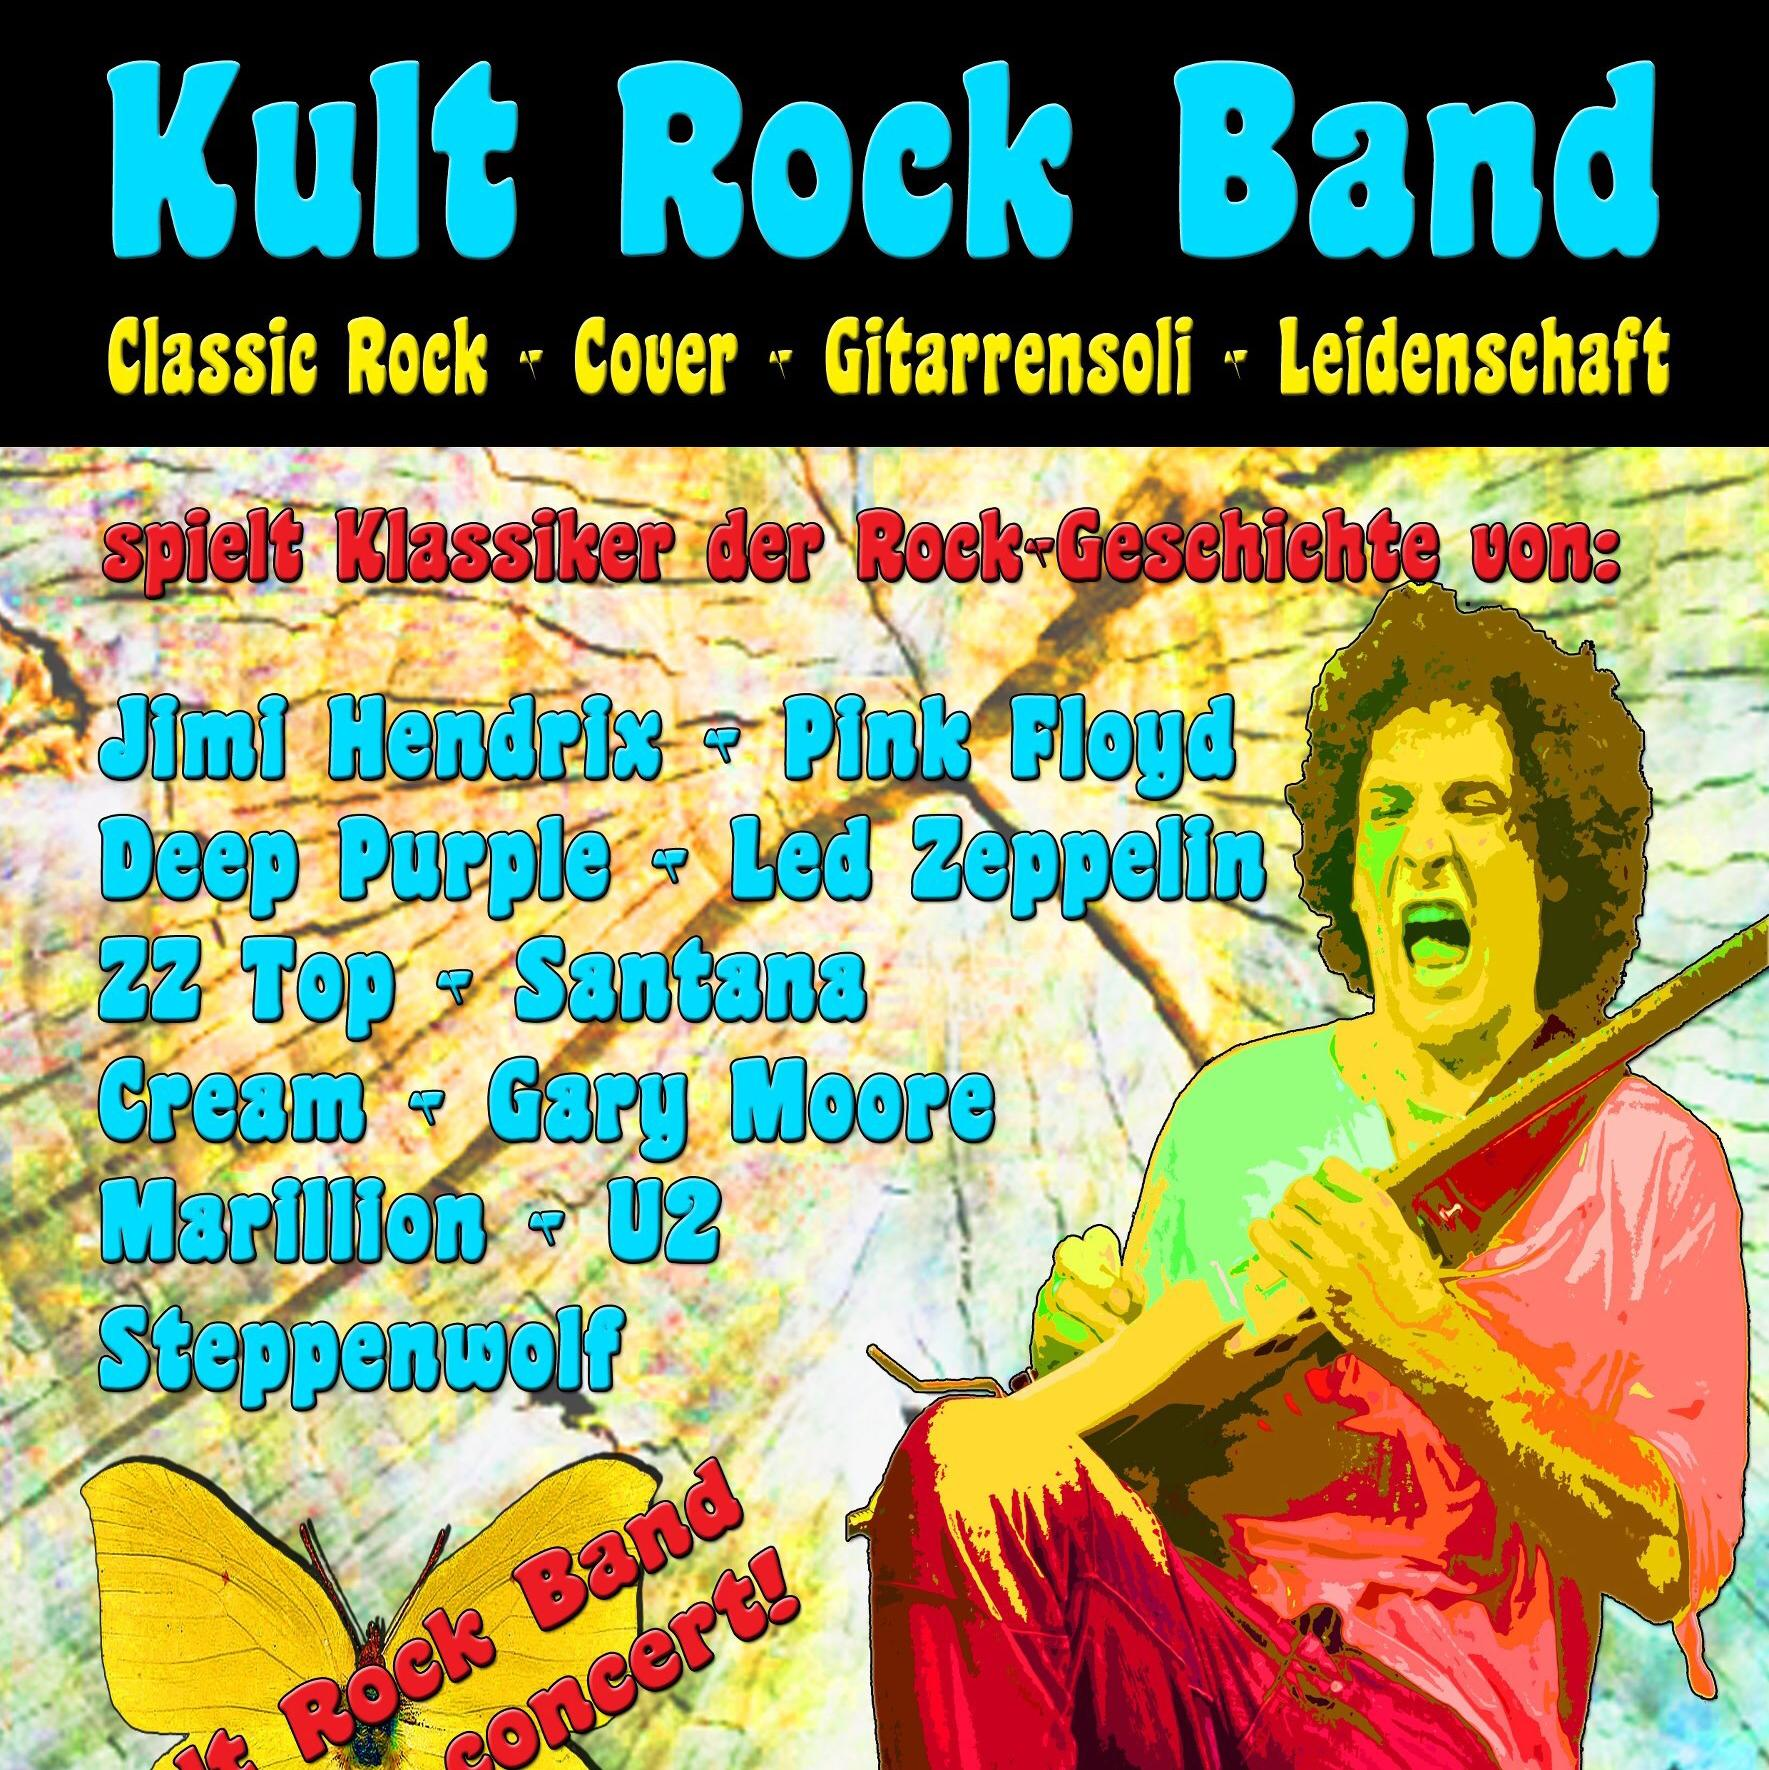 Kult Rock Band auf Facebook